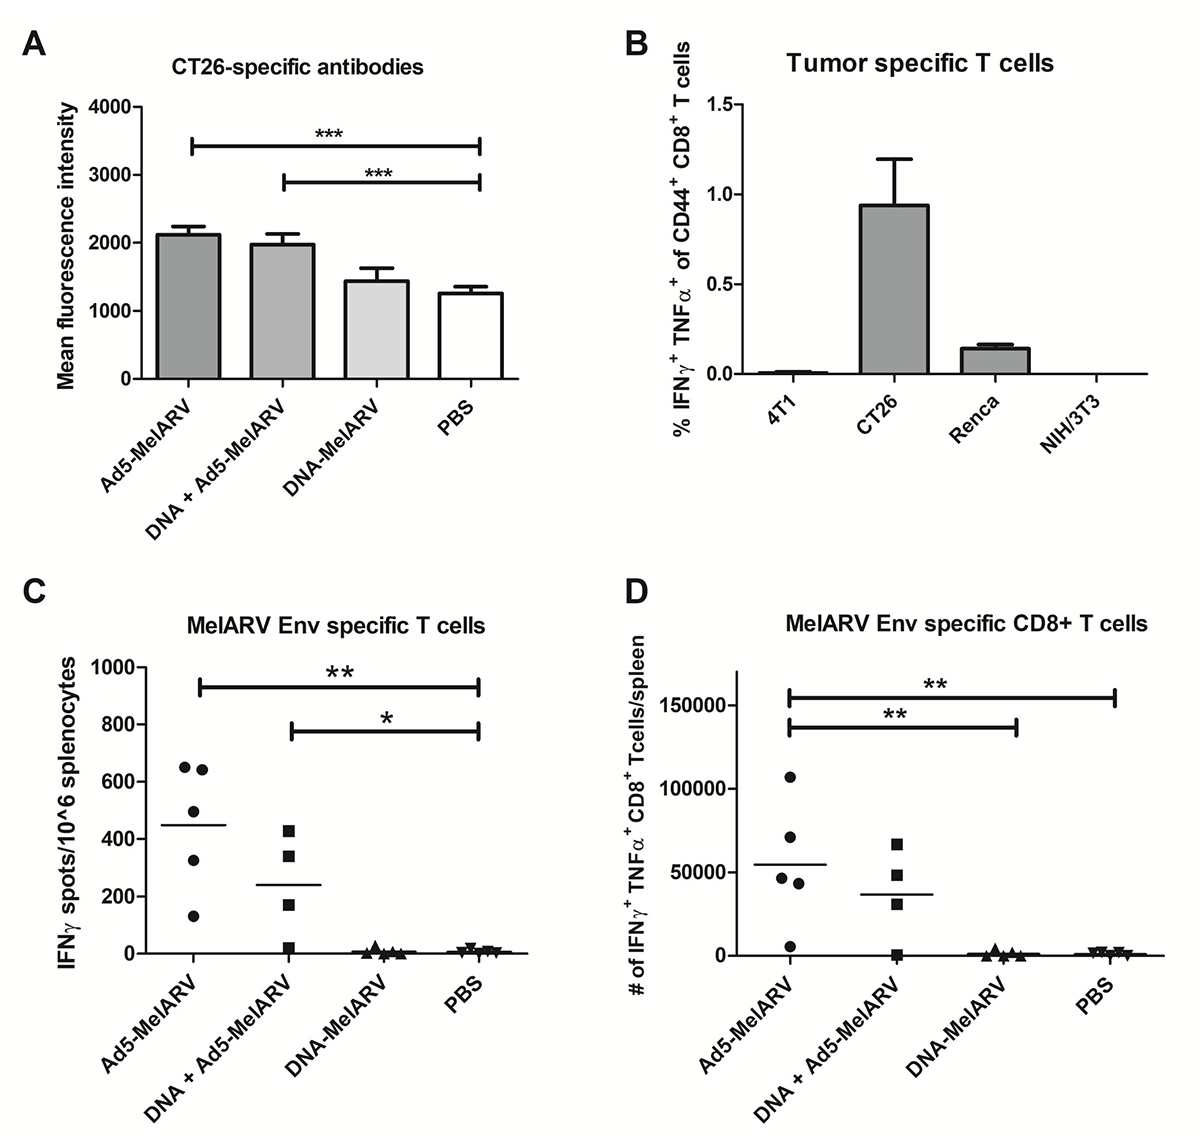 Antibody and CD8+ T cell specific immune responses induced by Ad5-MelARV.